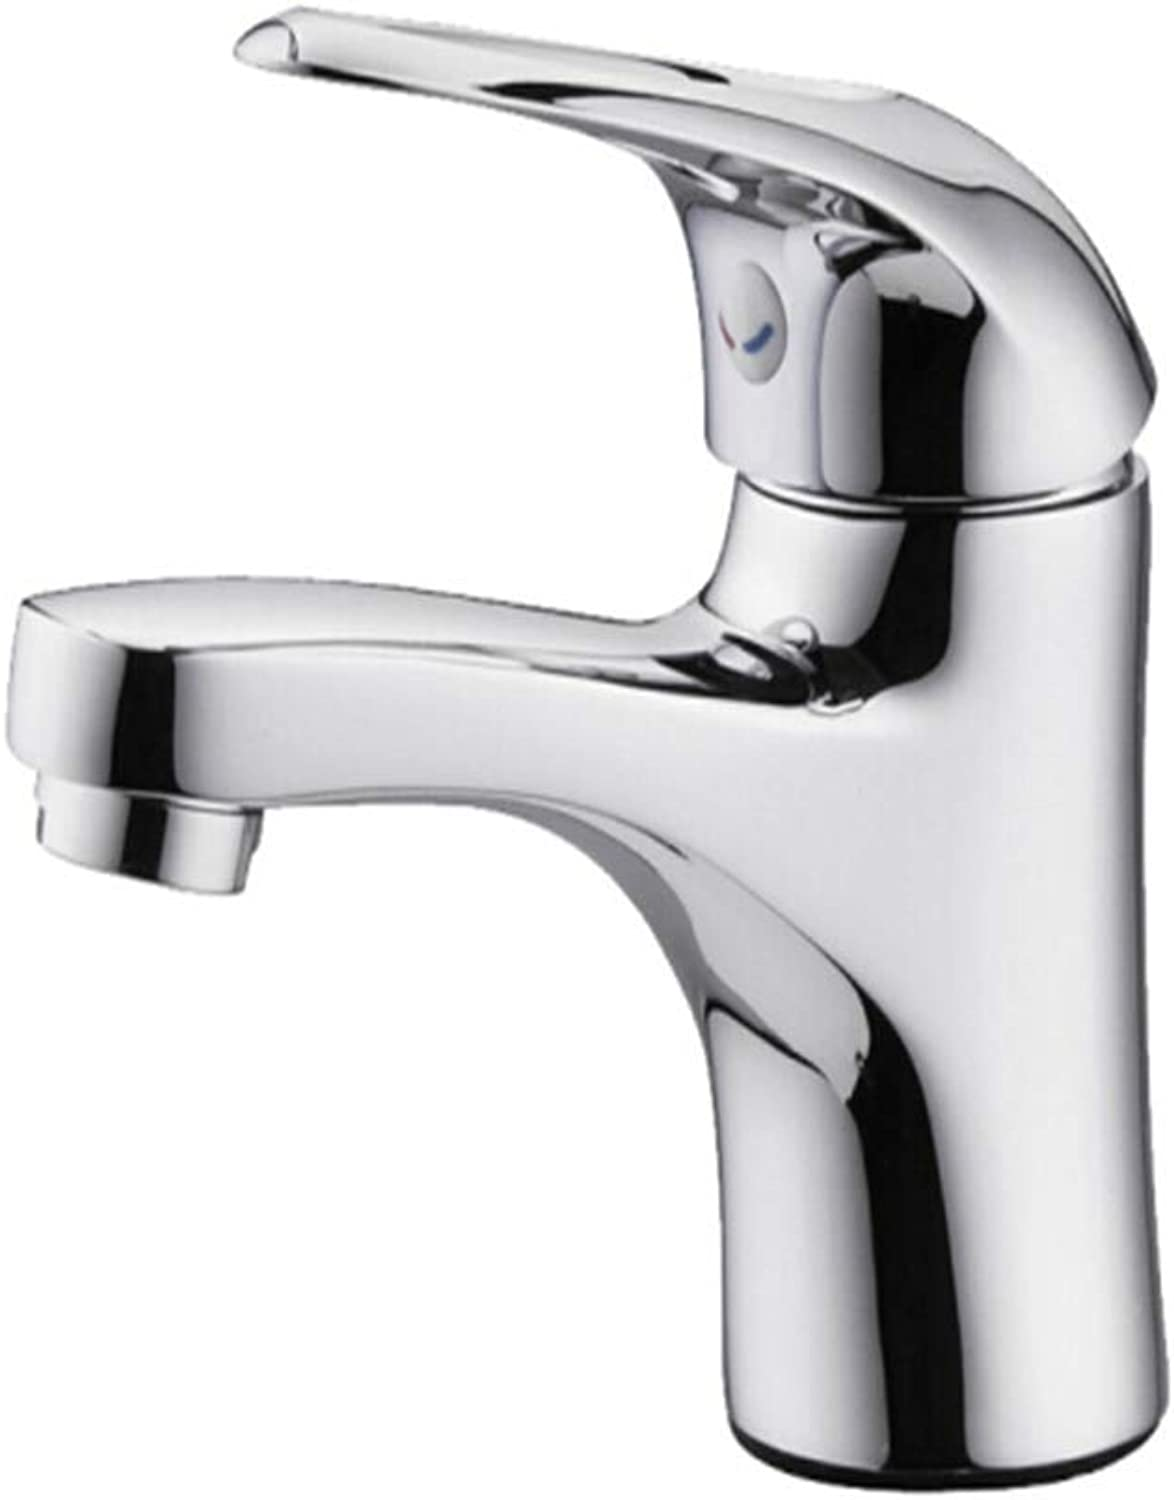 Kitchen Taps Faucet Modern Kitchen Sink Taps Stainless Steelsingle Faucet with Single Orifice